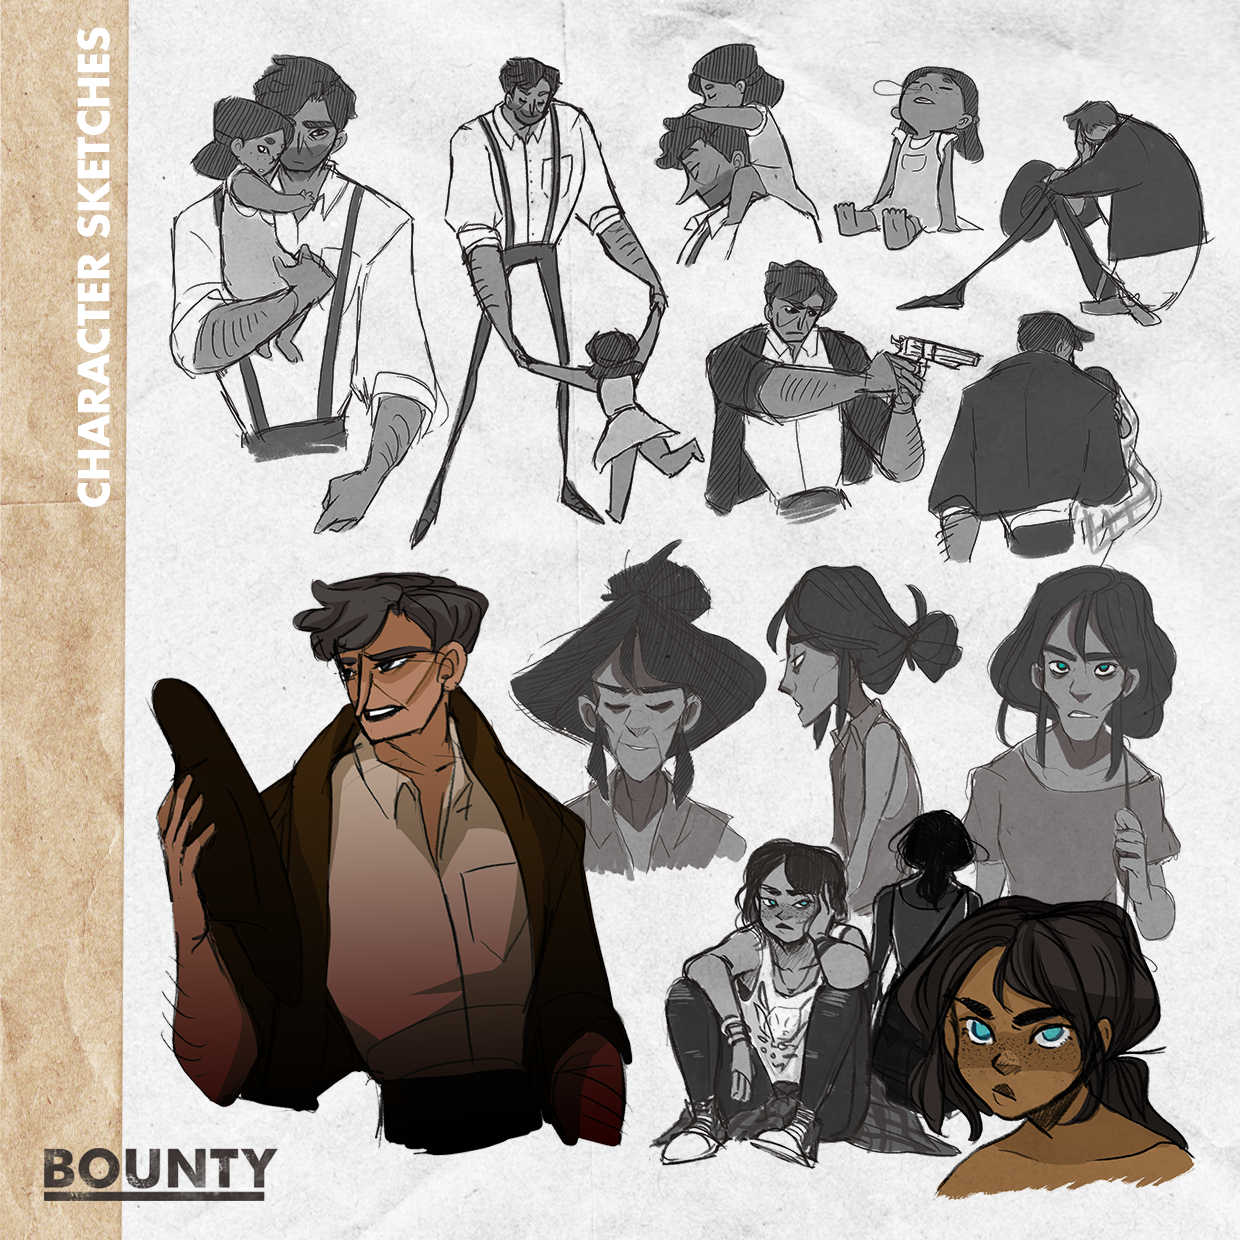 Bounty_Character Sketches.png